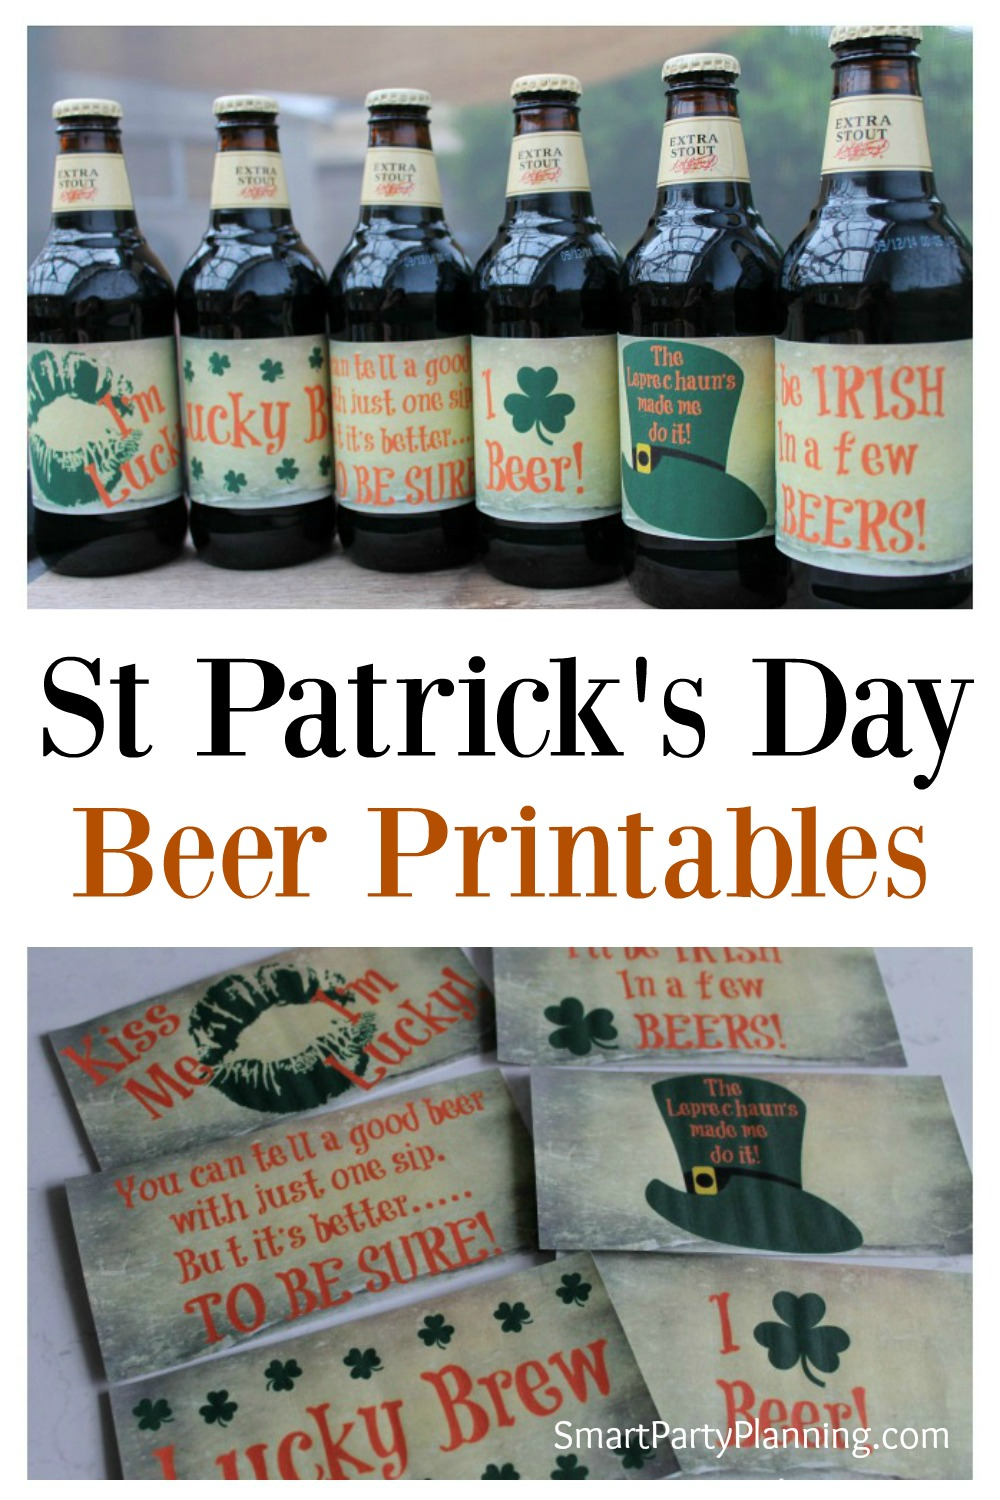 Celebrate St Patrick's with these cheeky St Patrick's day printables. They are easy to do and will add a touch of fun to your beer bottles.